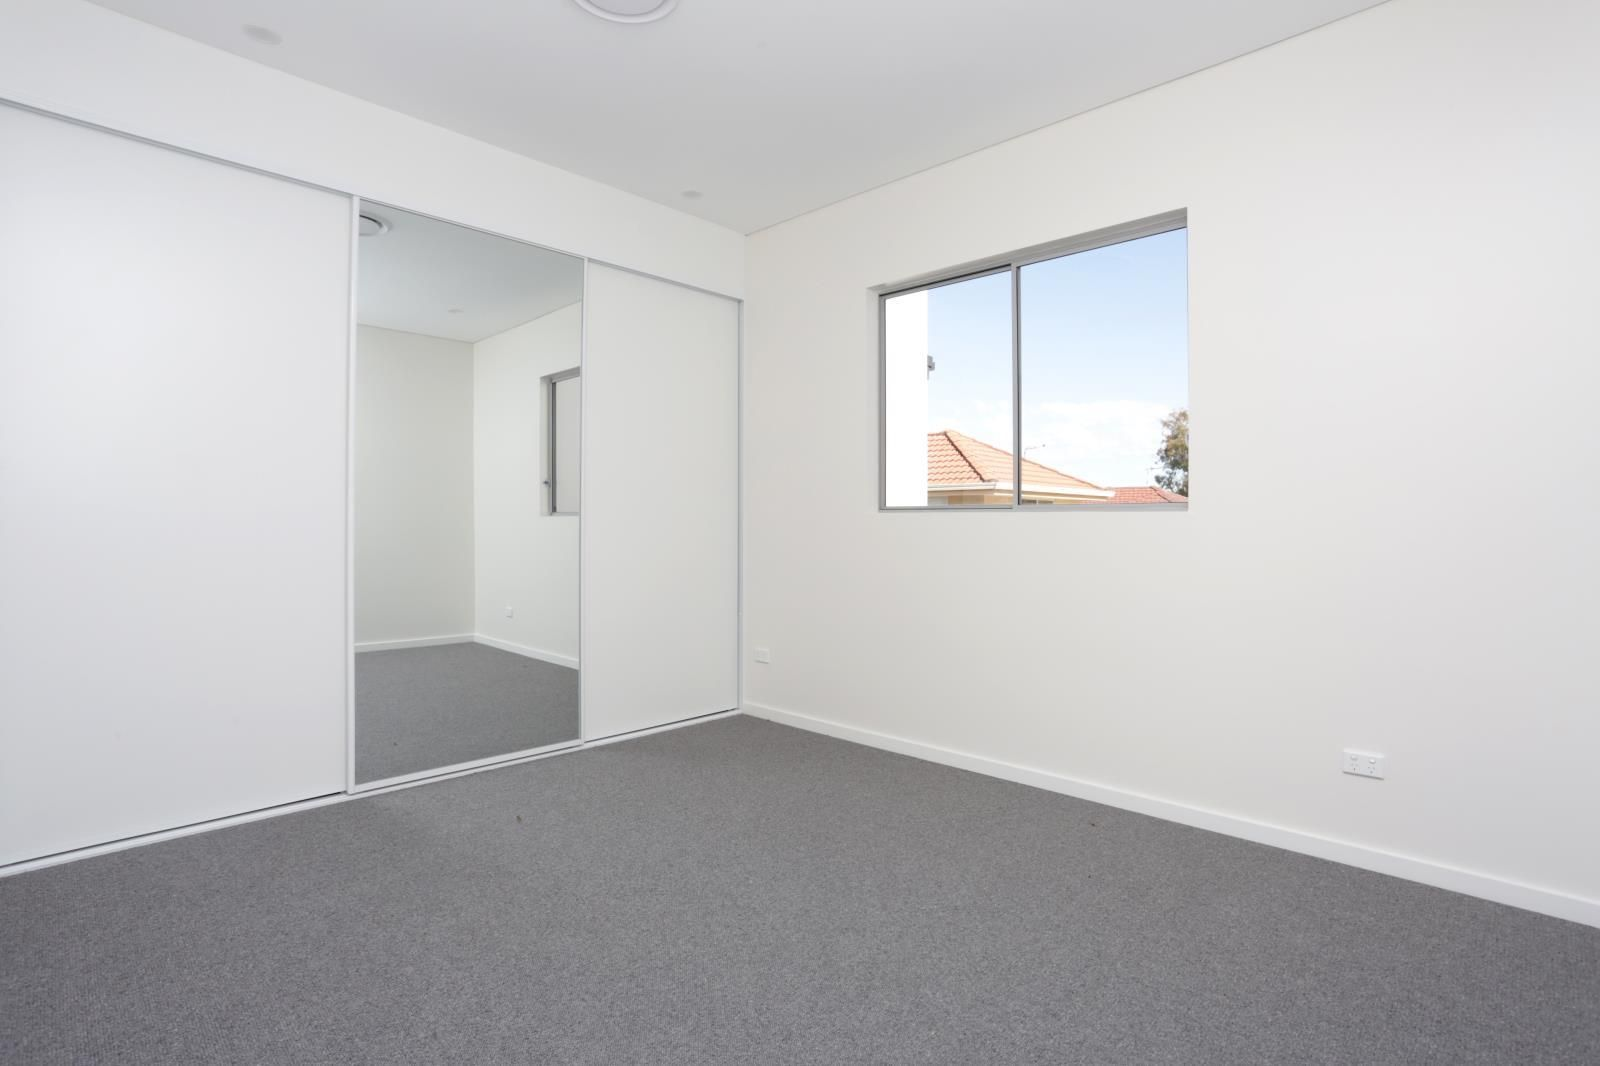 3/47 Evelyn Street, Sylvania NSW 2224, Image 1